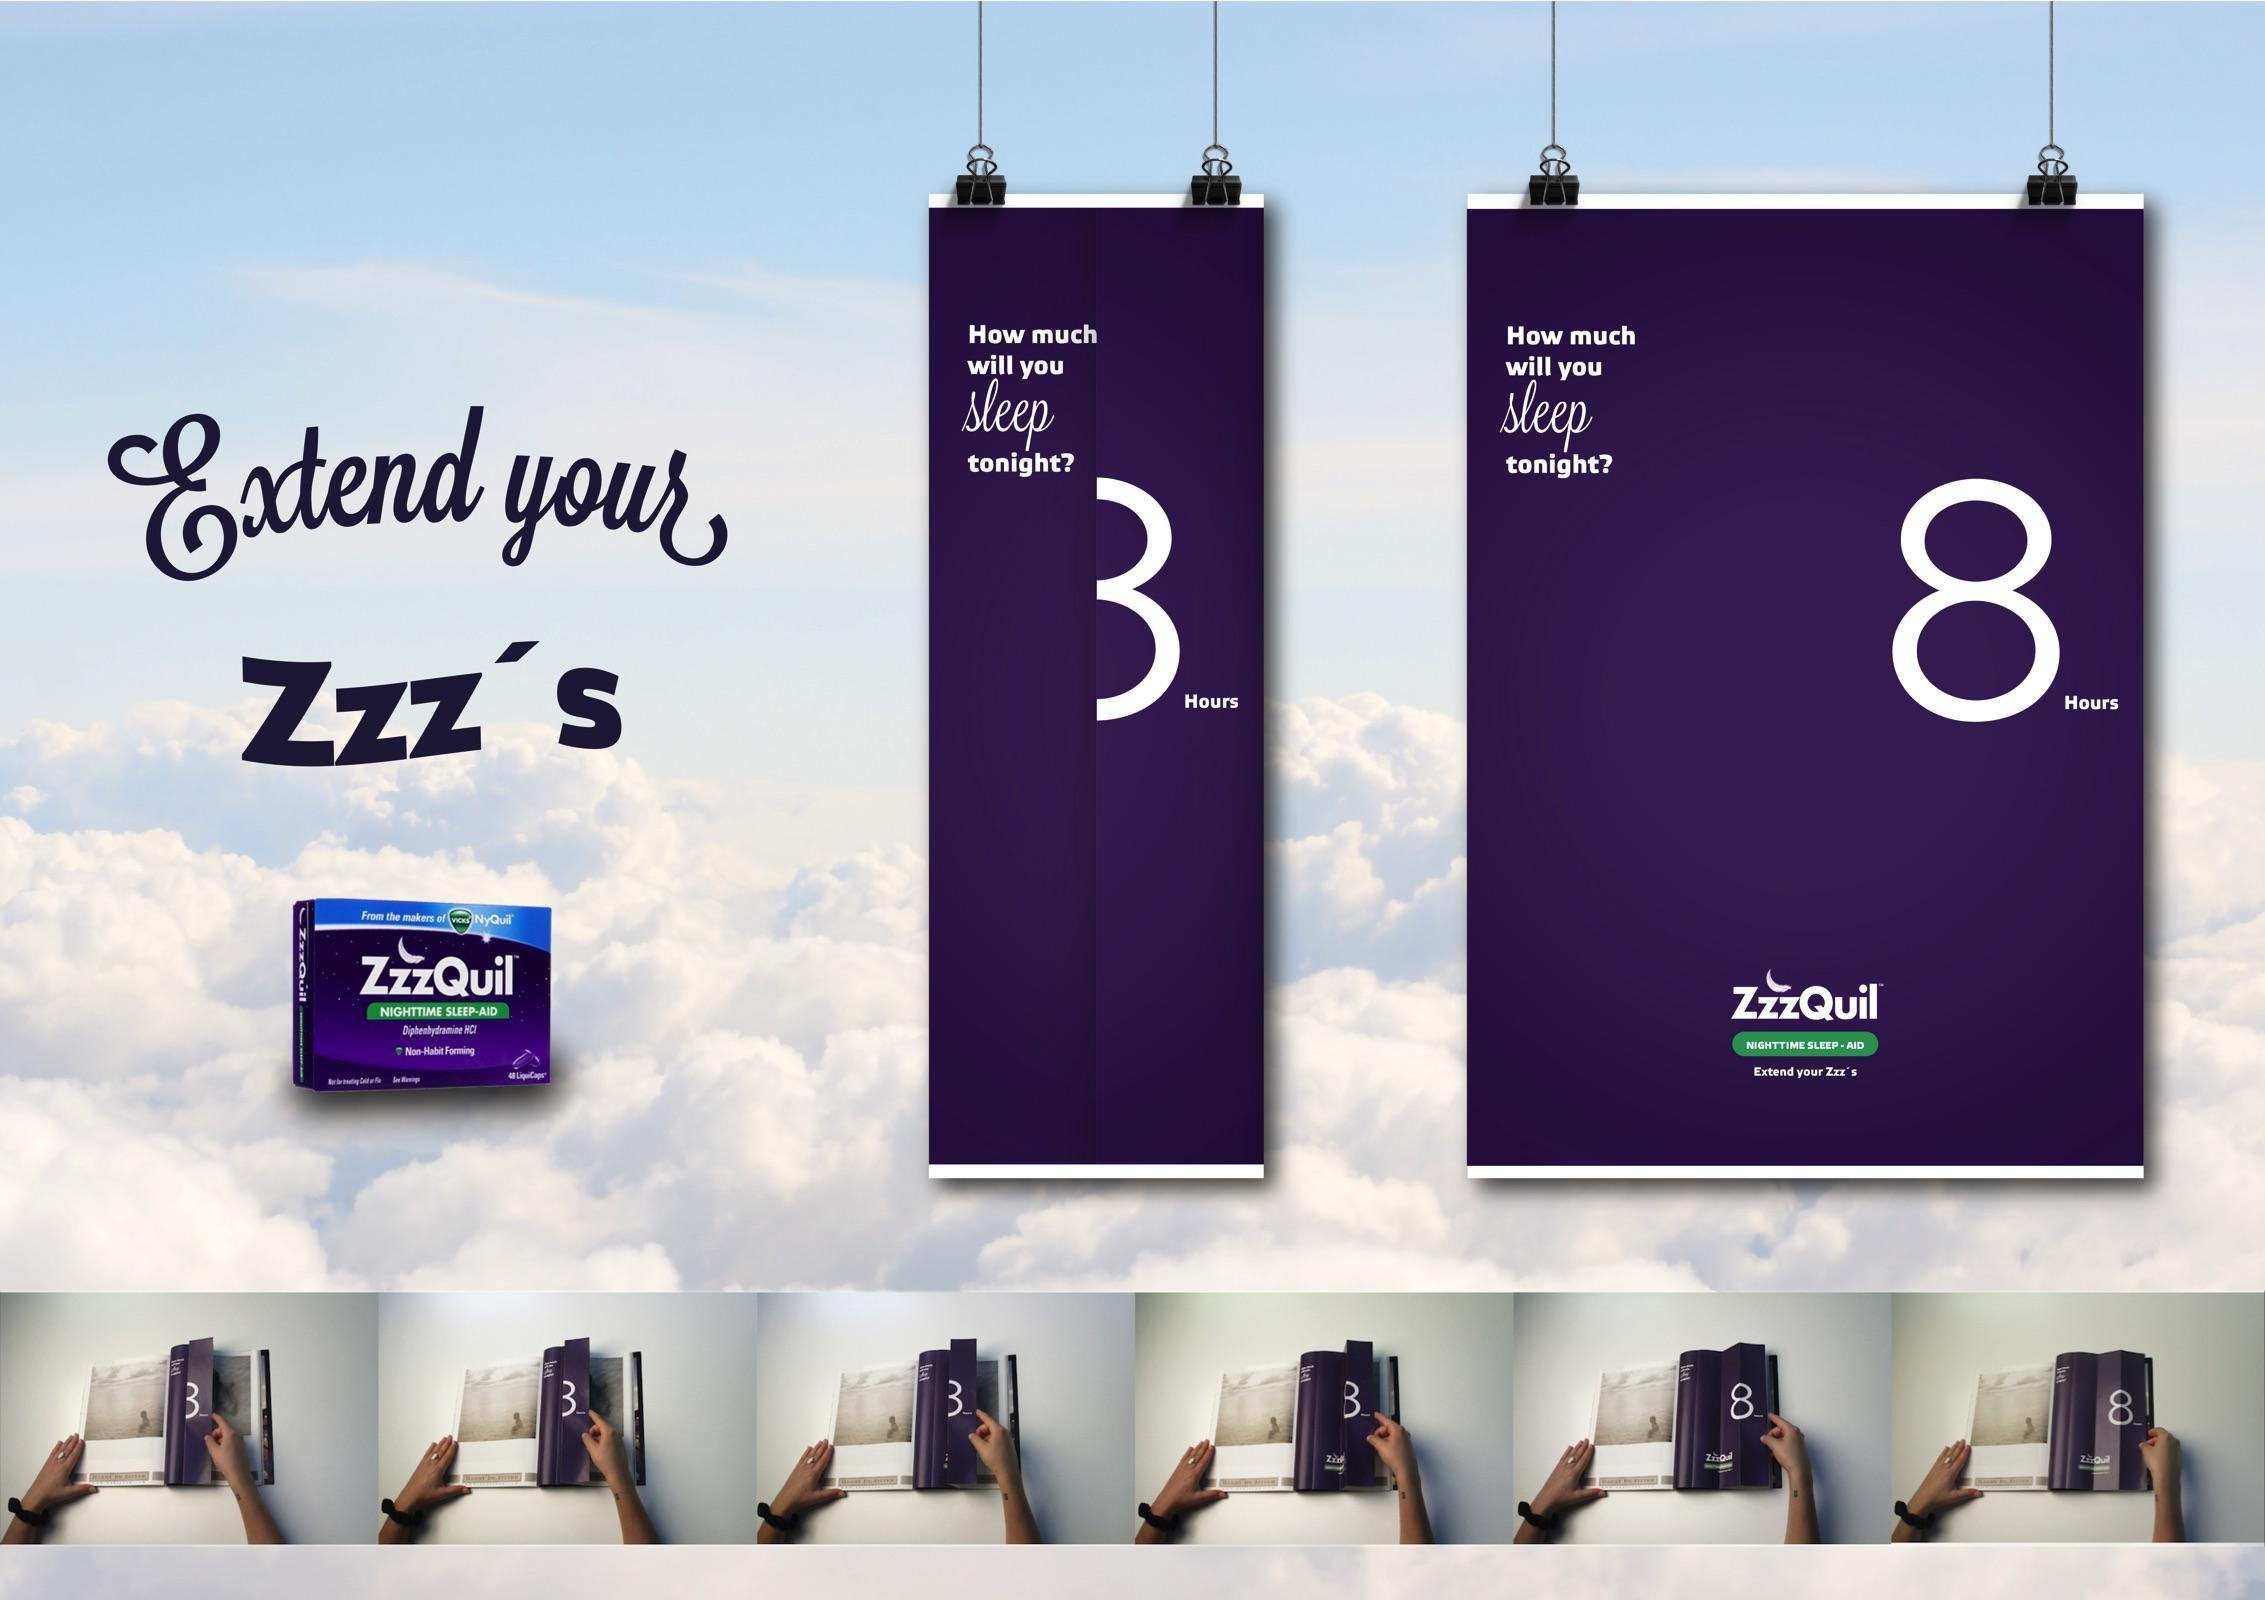 Zzzquil Print Ad - Extend your Zzz's